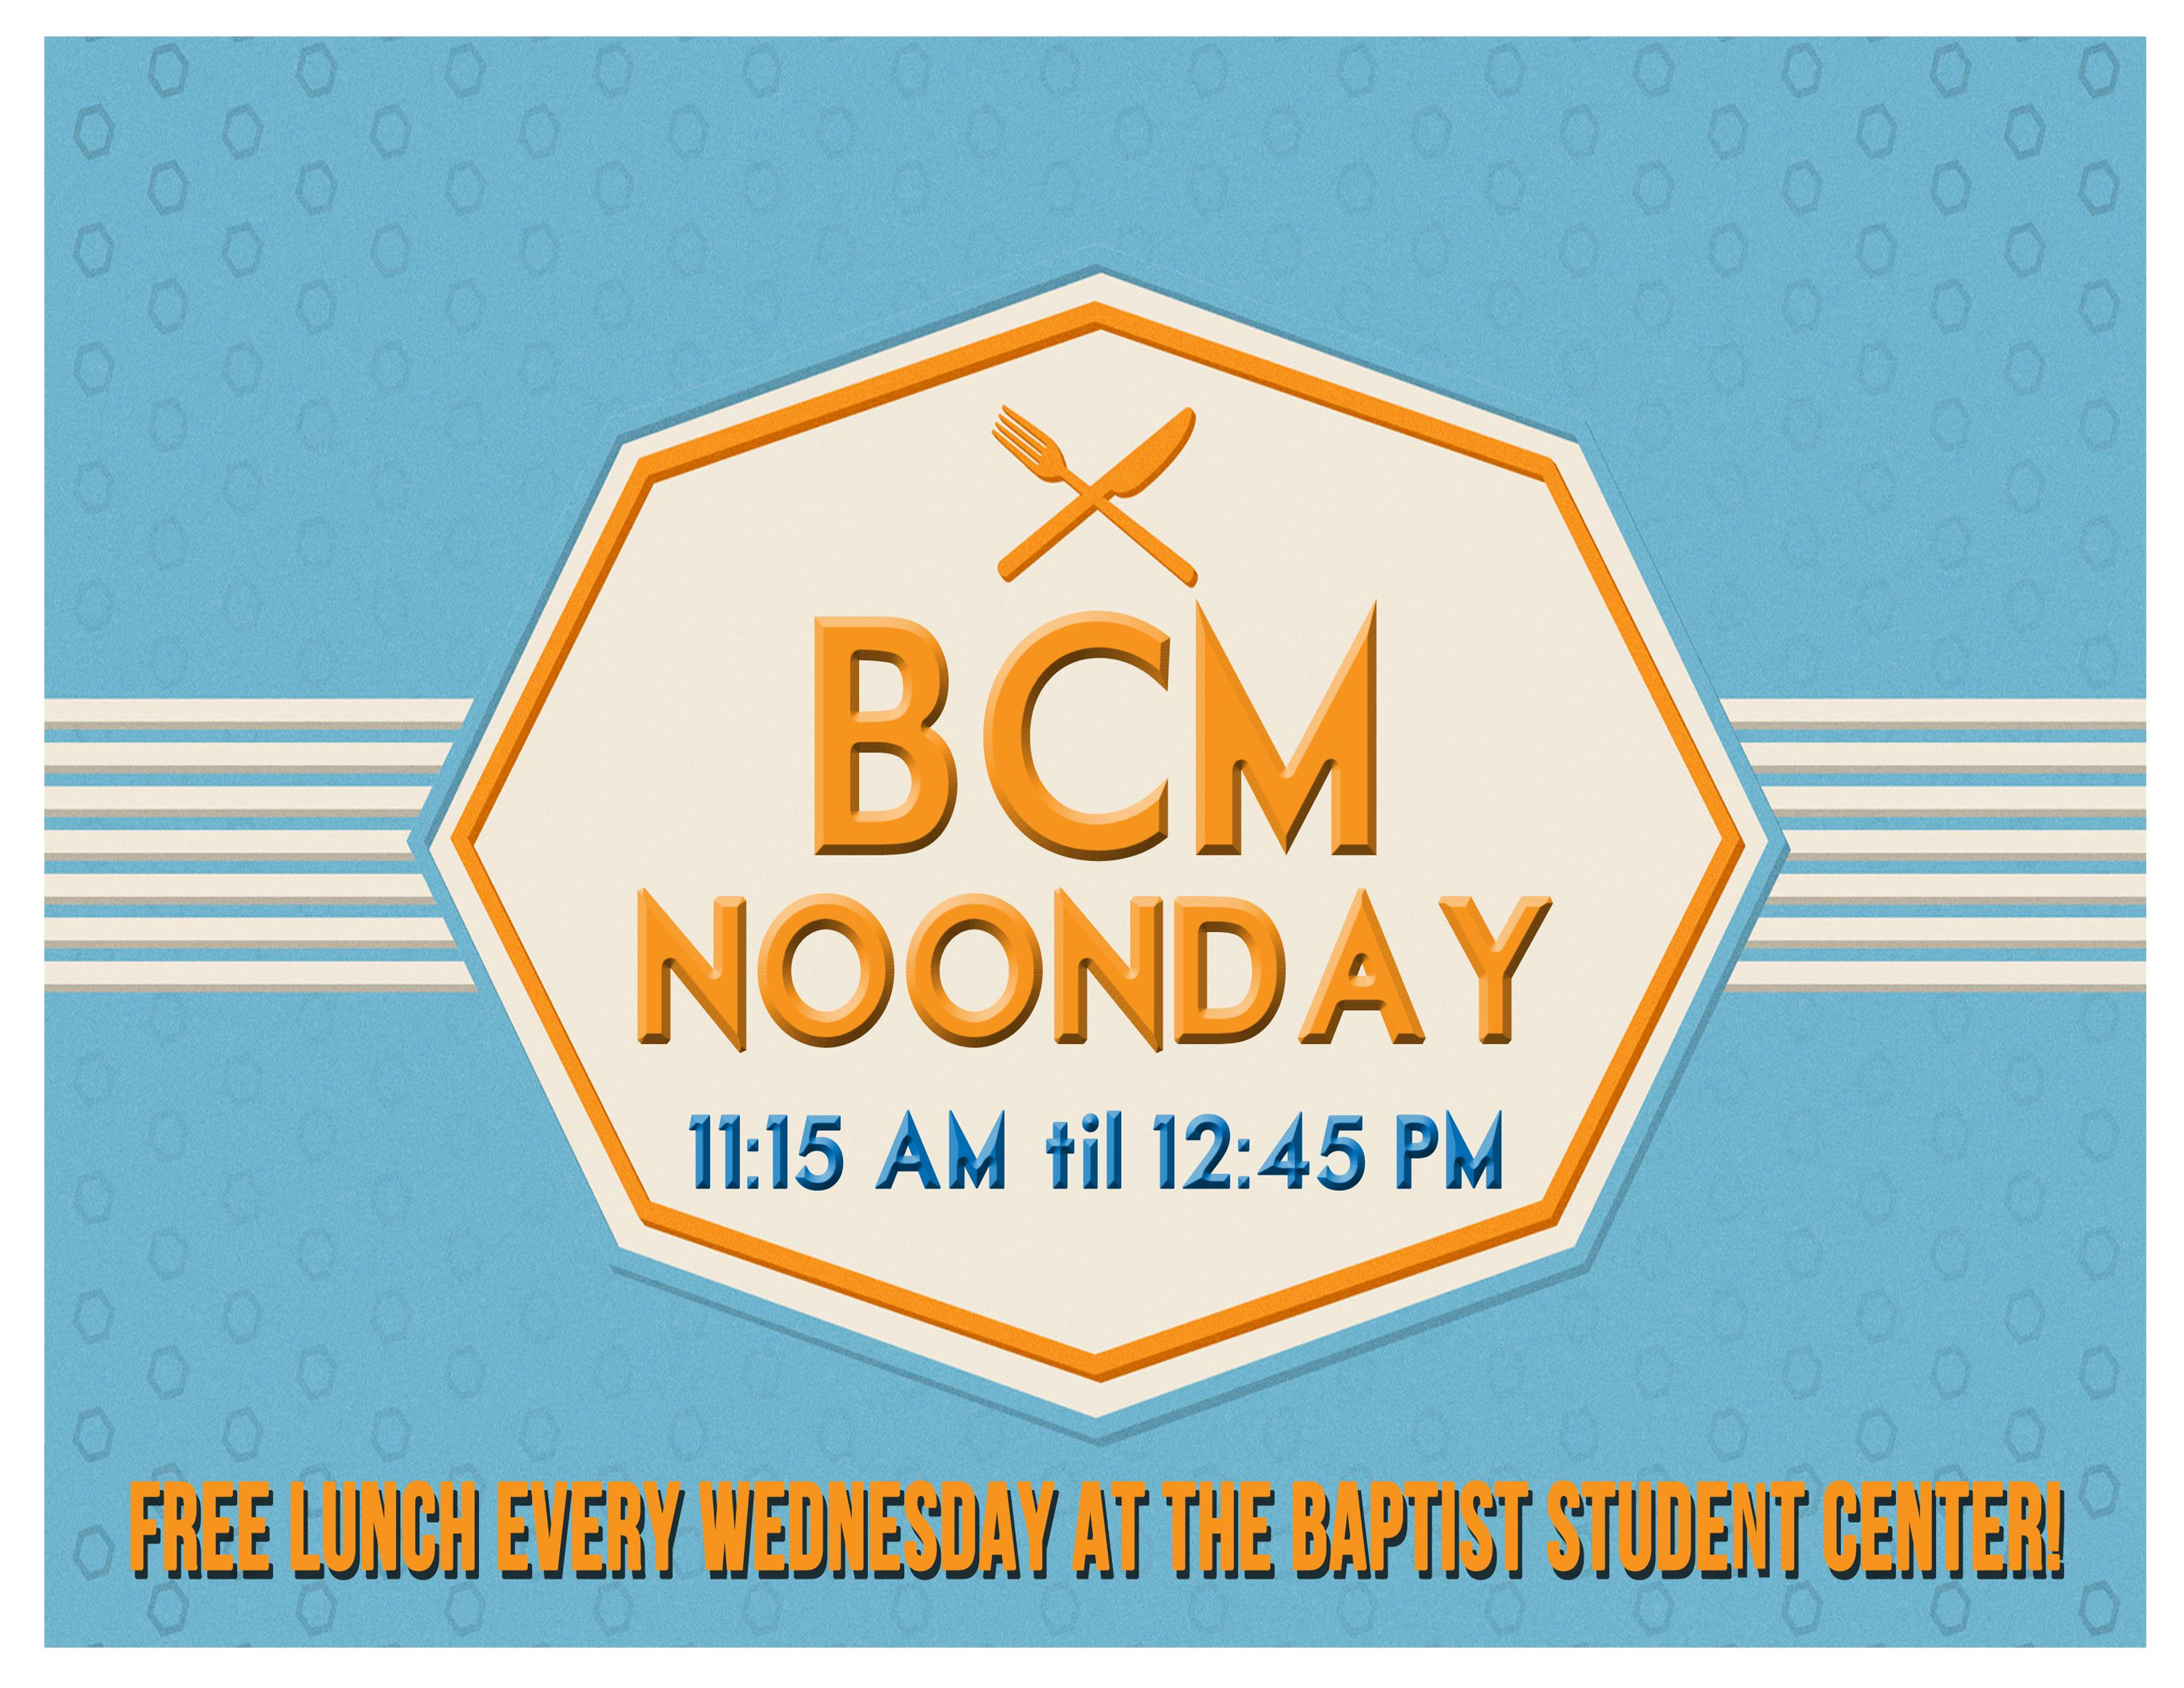 BCM Noonday